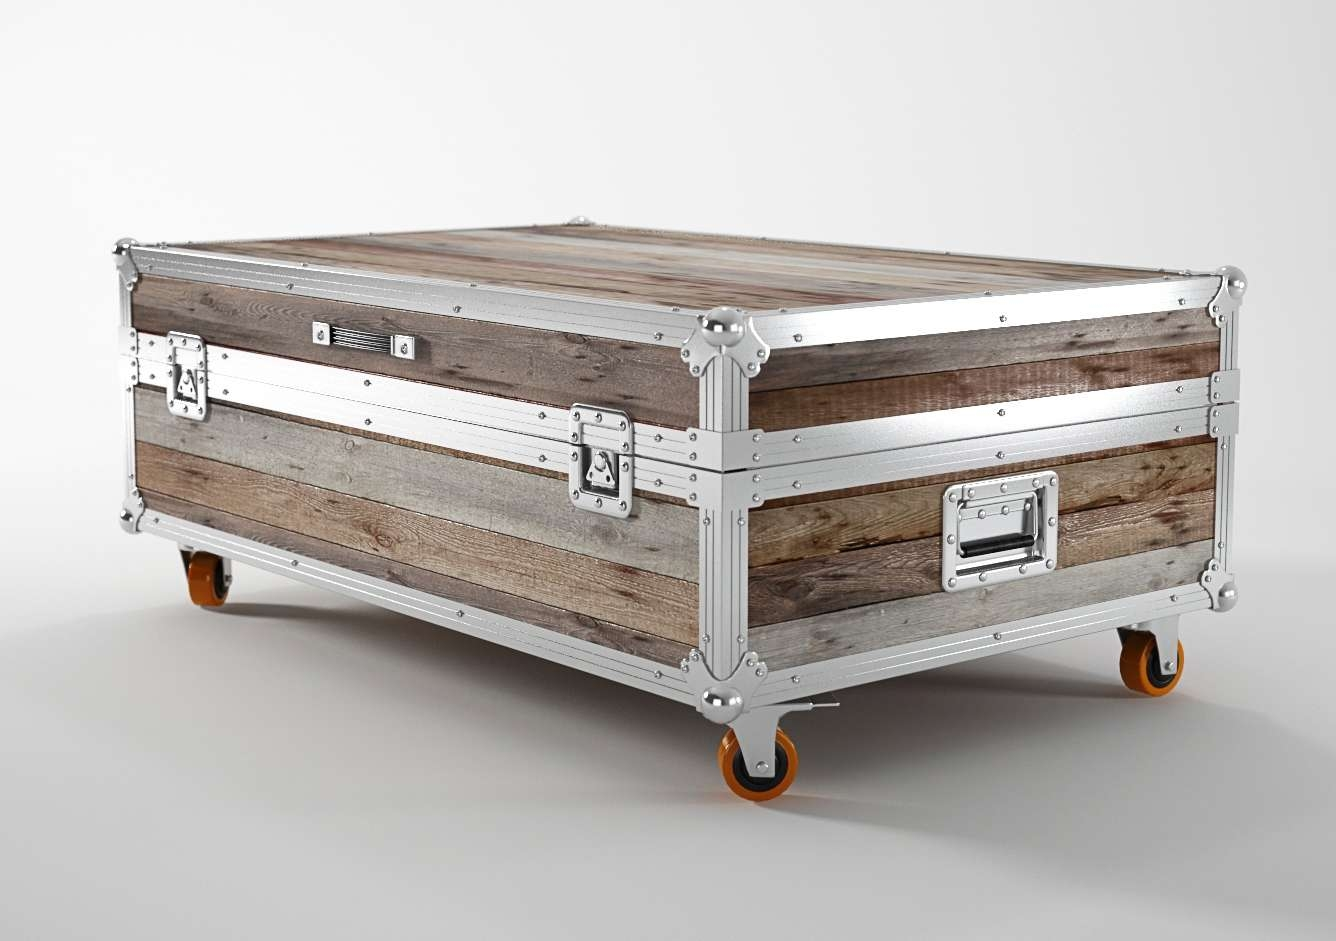 Multifunction Chest Coffee Table – Trunks For Coffee Table Pertaining To 2018 Large Trunk Coffee Tables (View 12 of 20)